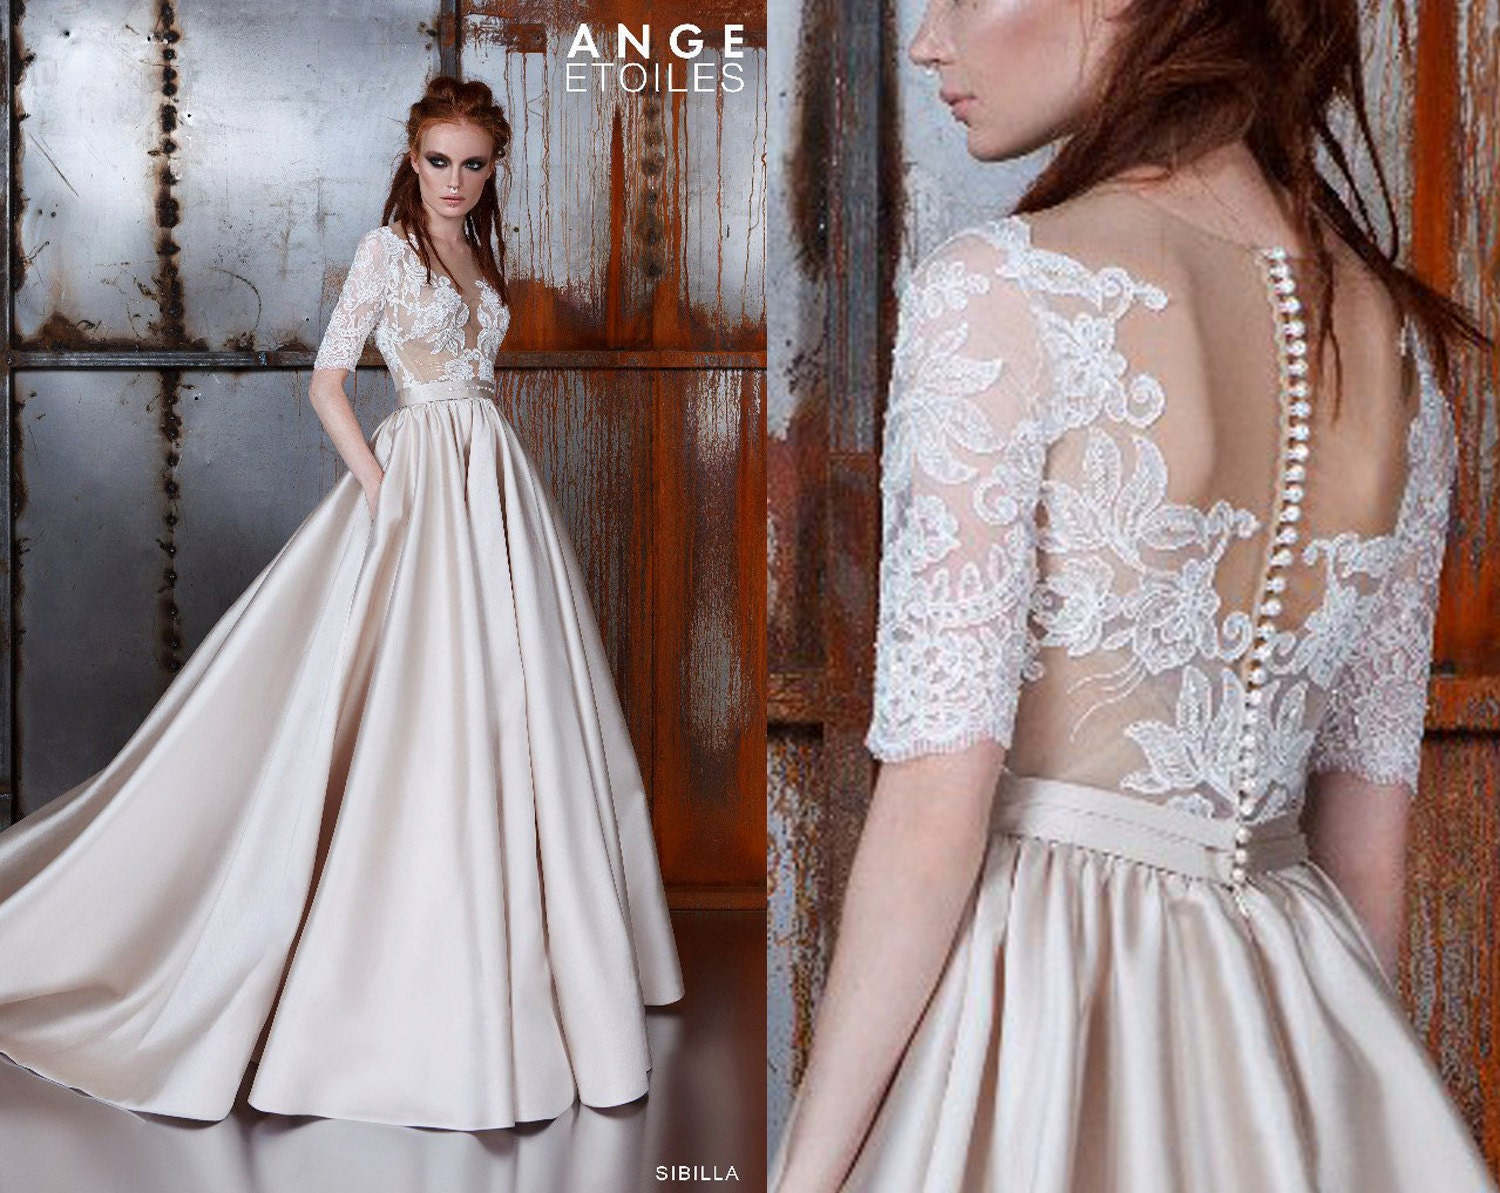 A Line Wedding Dress: Wedding Dress SIBILLA Wedding Dresses By RaraAvisAngeEtoiles